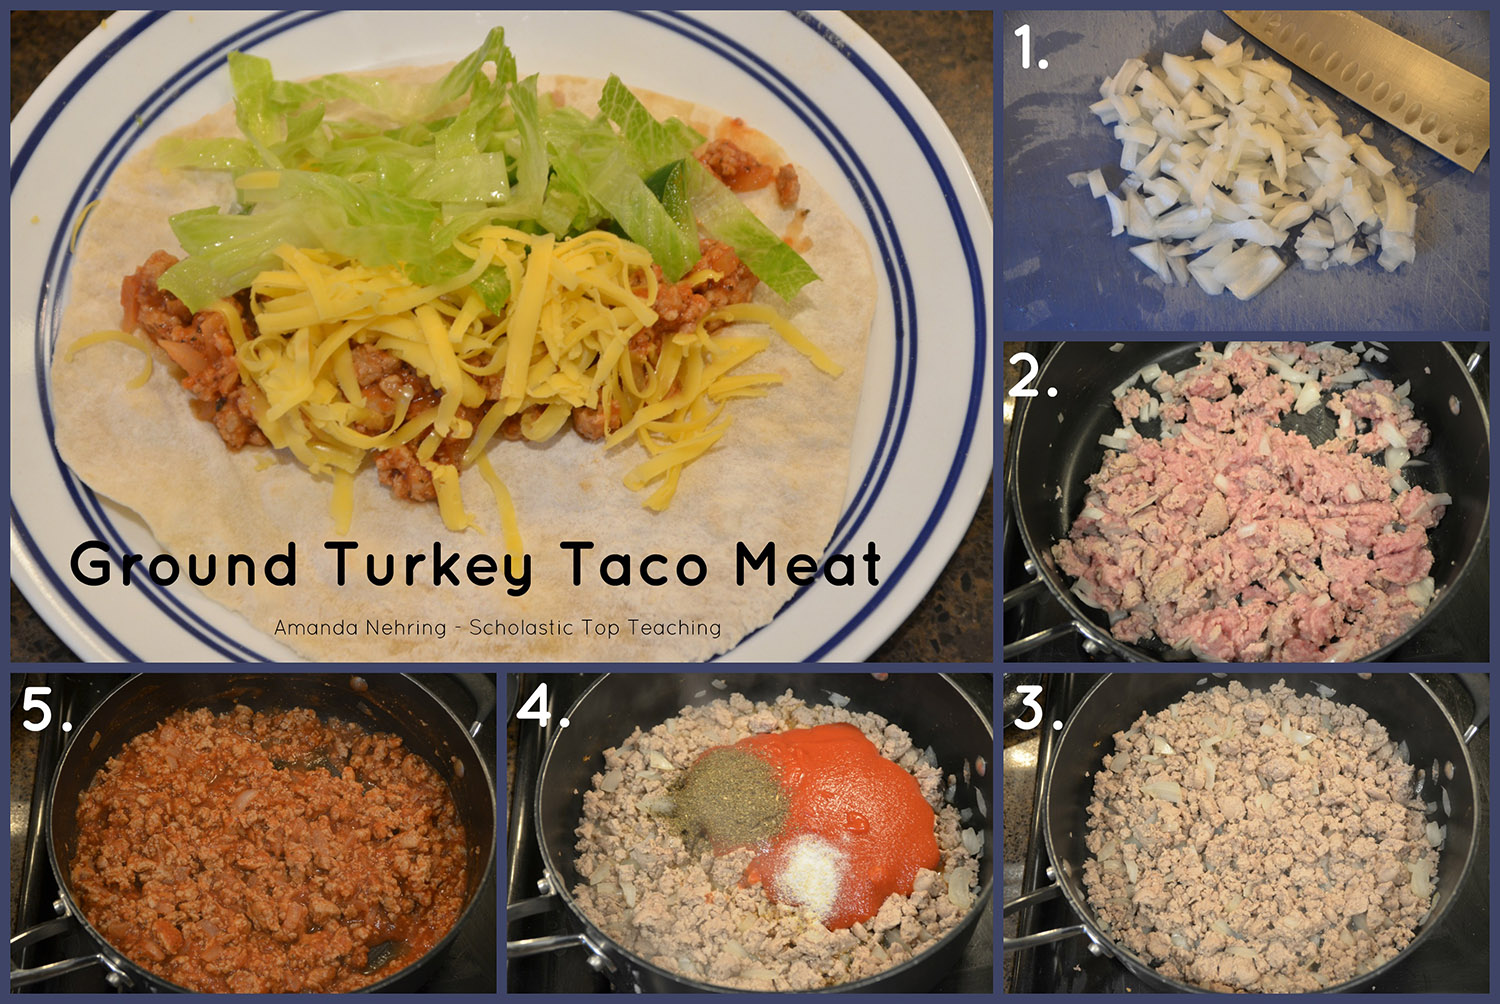 Steps to making ground turkey tacos